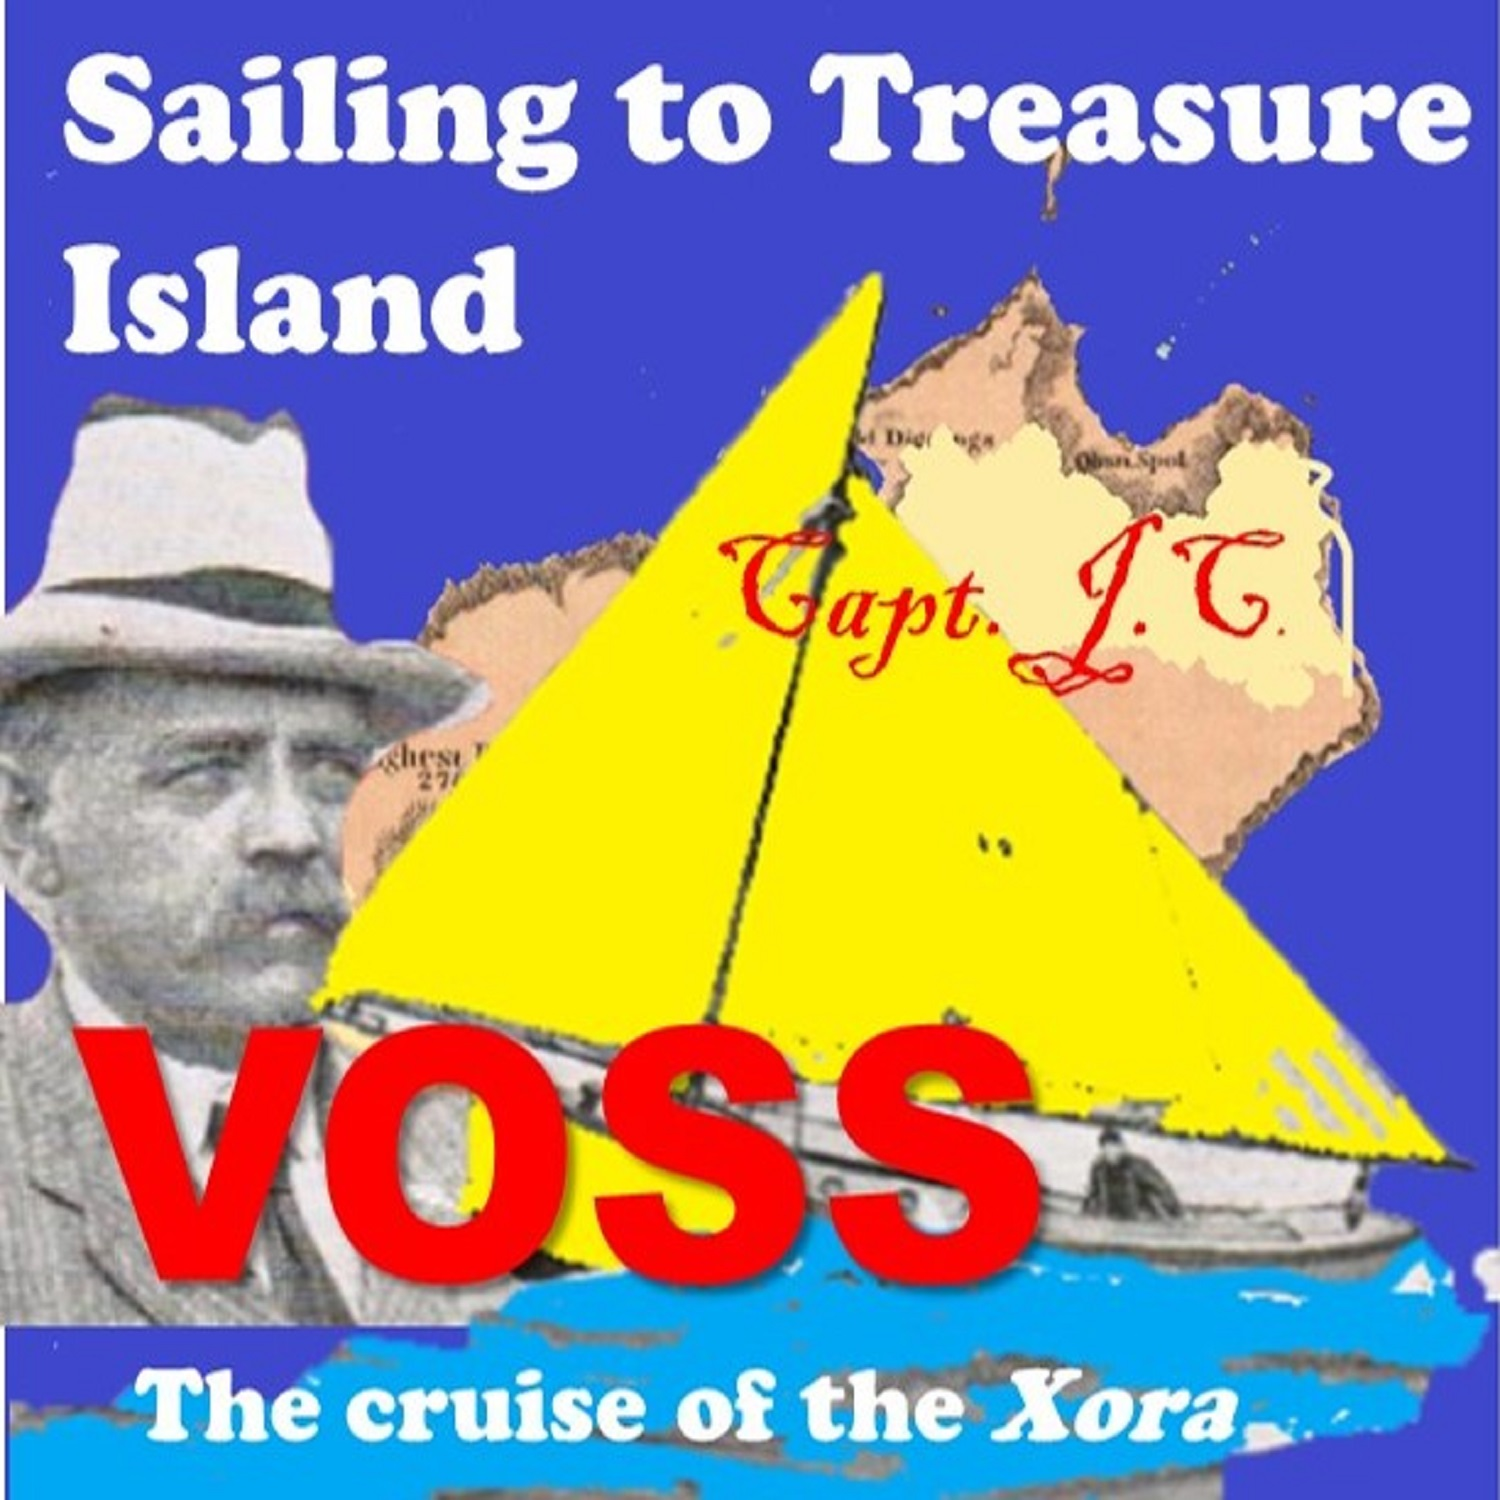 Ep. 54: Capt. Voss, Sailing to Treasure Island: The Cruise of the Xora read by Linus Wilson